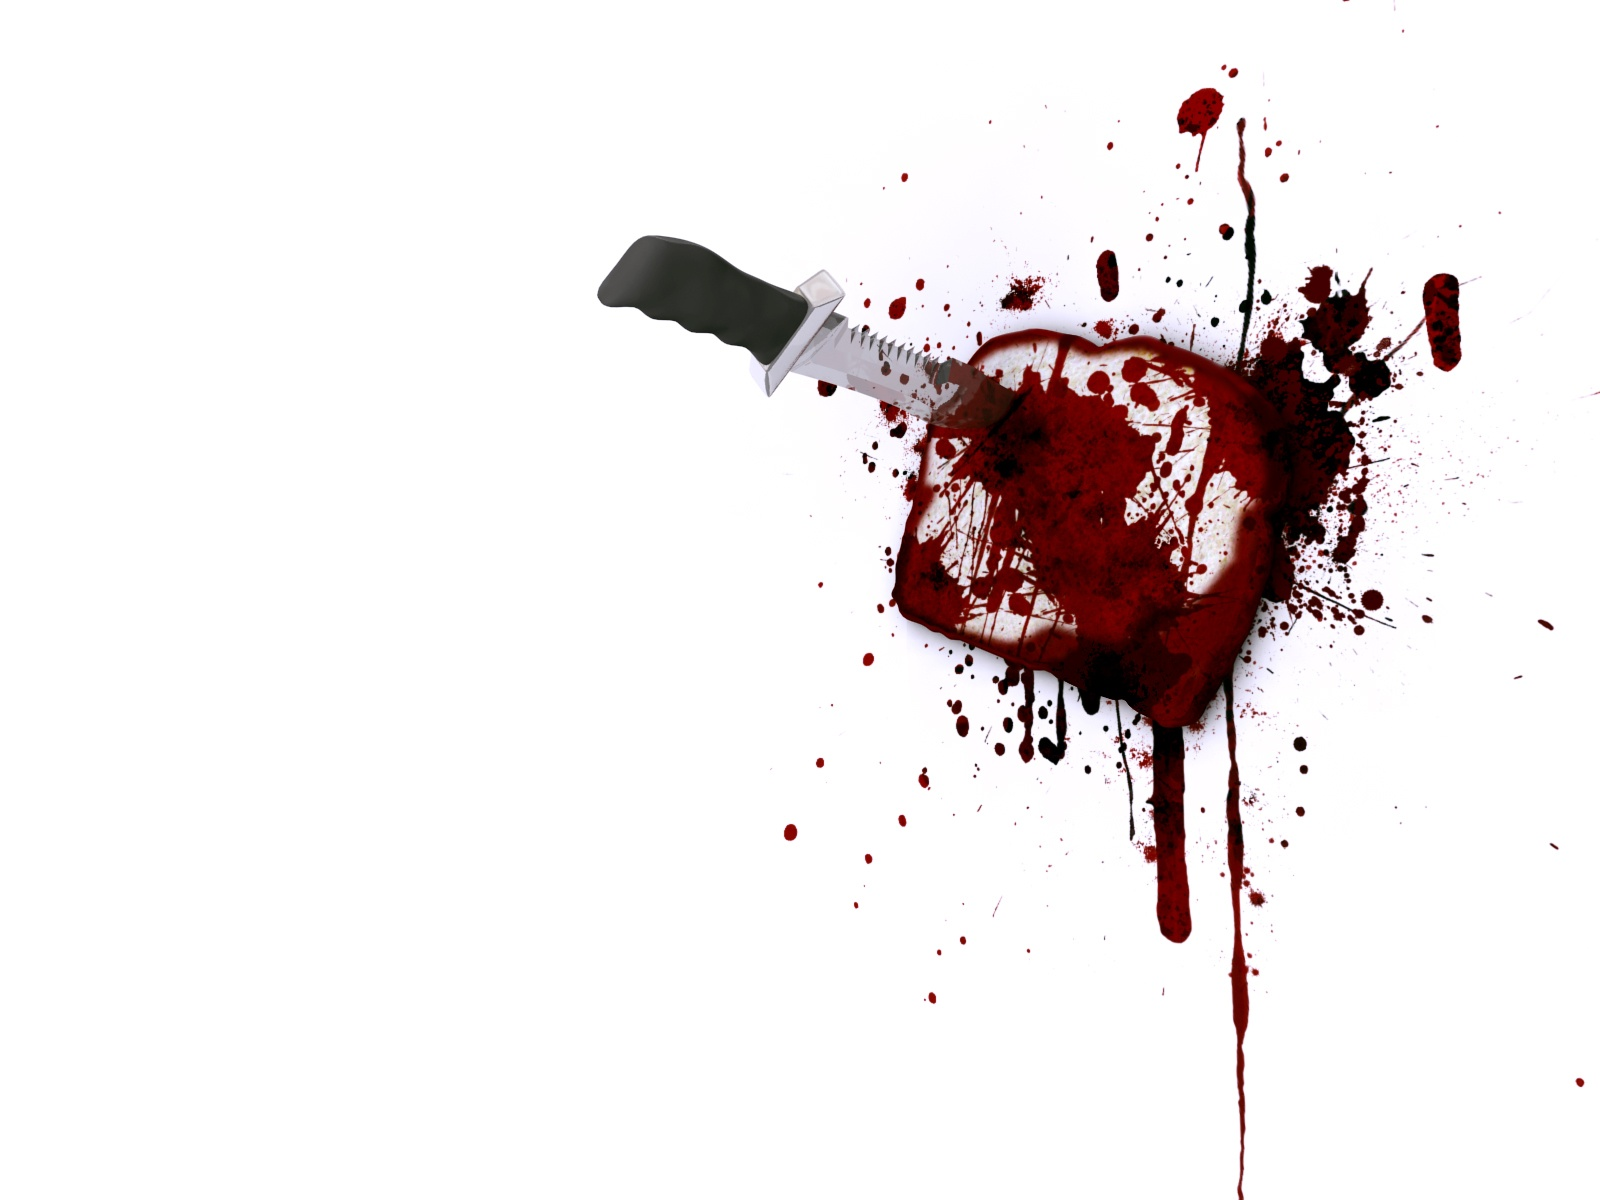 knife and blood wallpapers | knife and blood stock photos